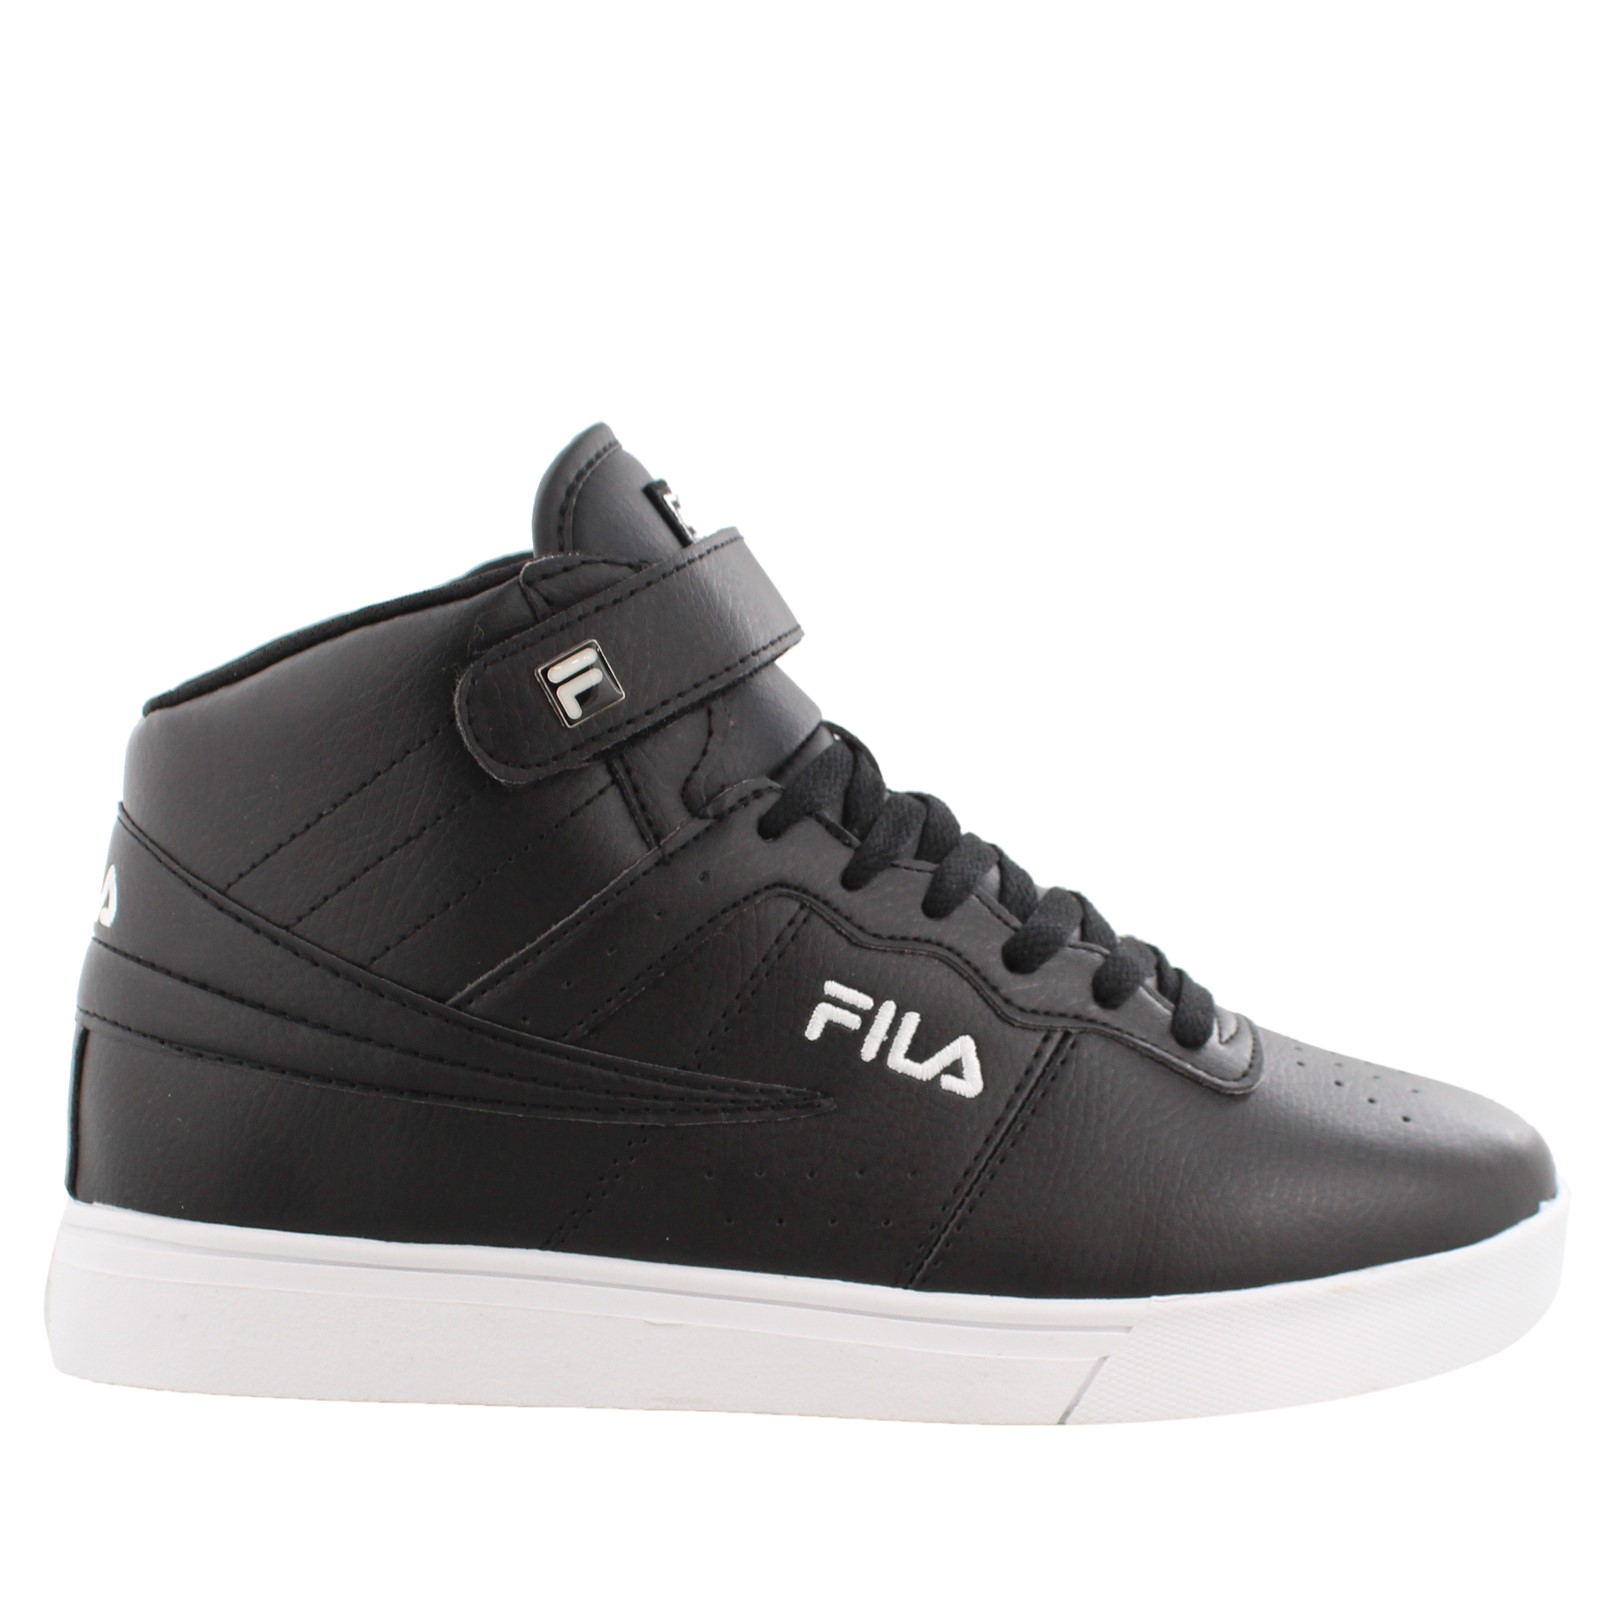 Men's Fila, Vulc 13 Mid Plus